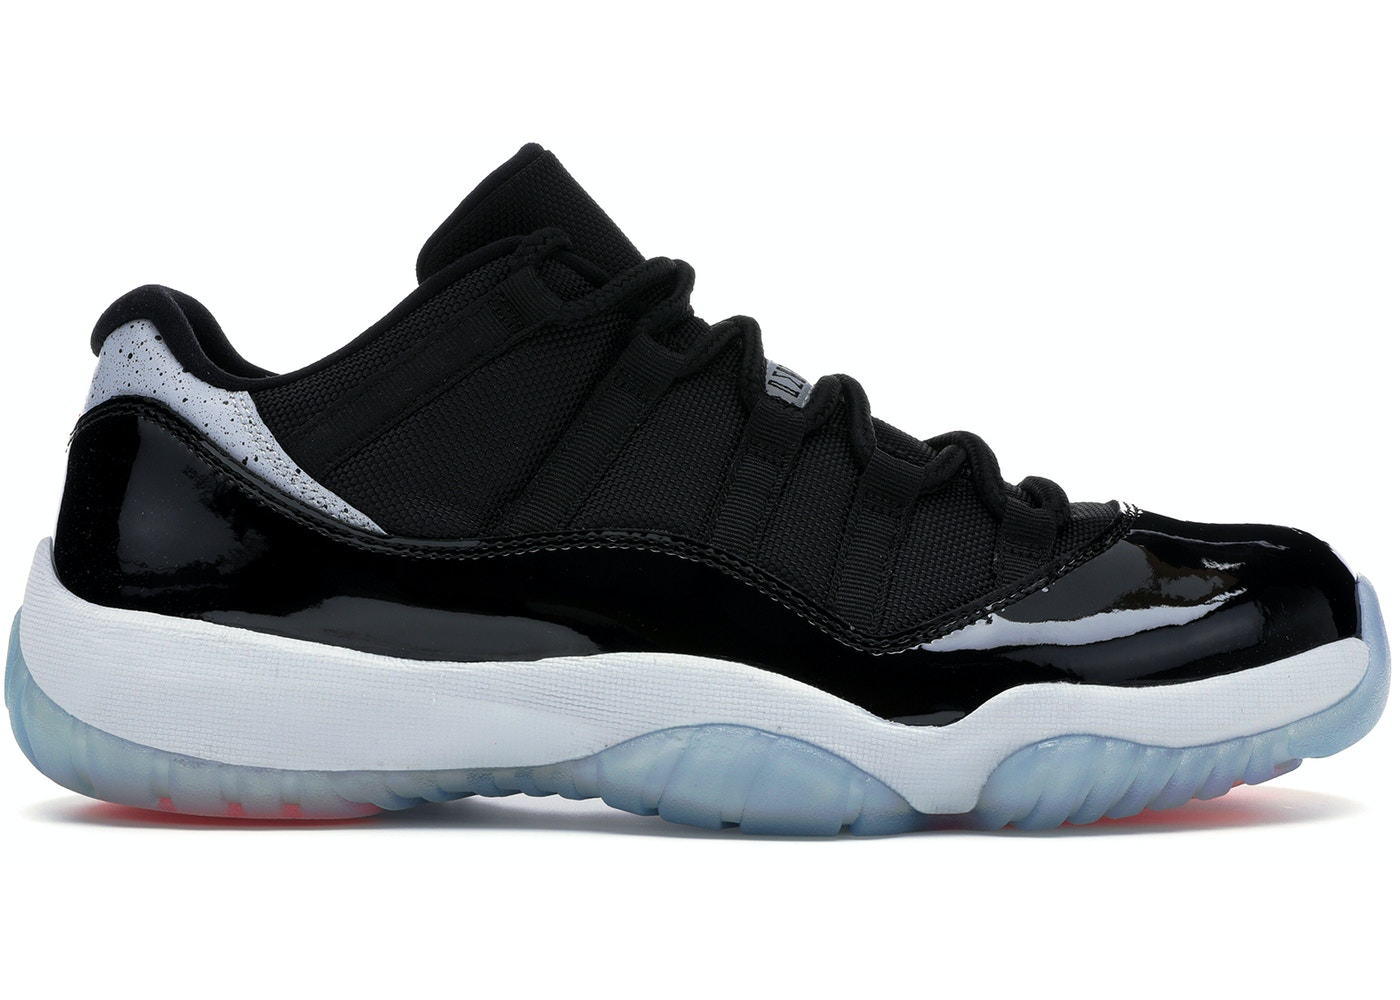 sale retailer bd686 63ee5 Jordan 11 Retro Low Infrared - 528895-023